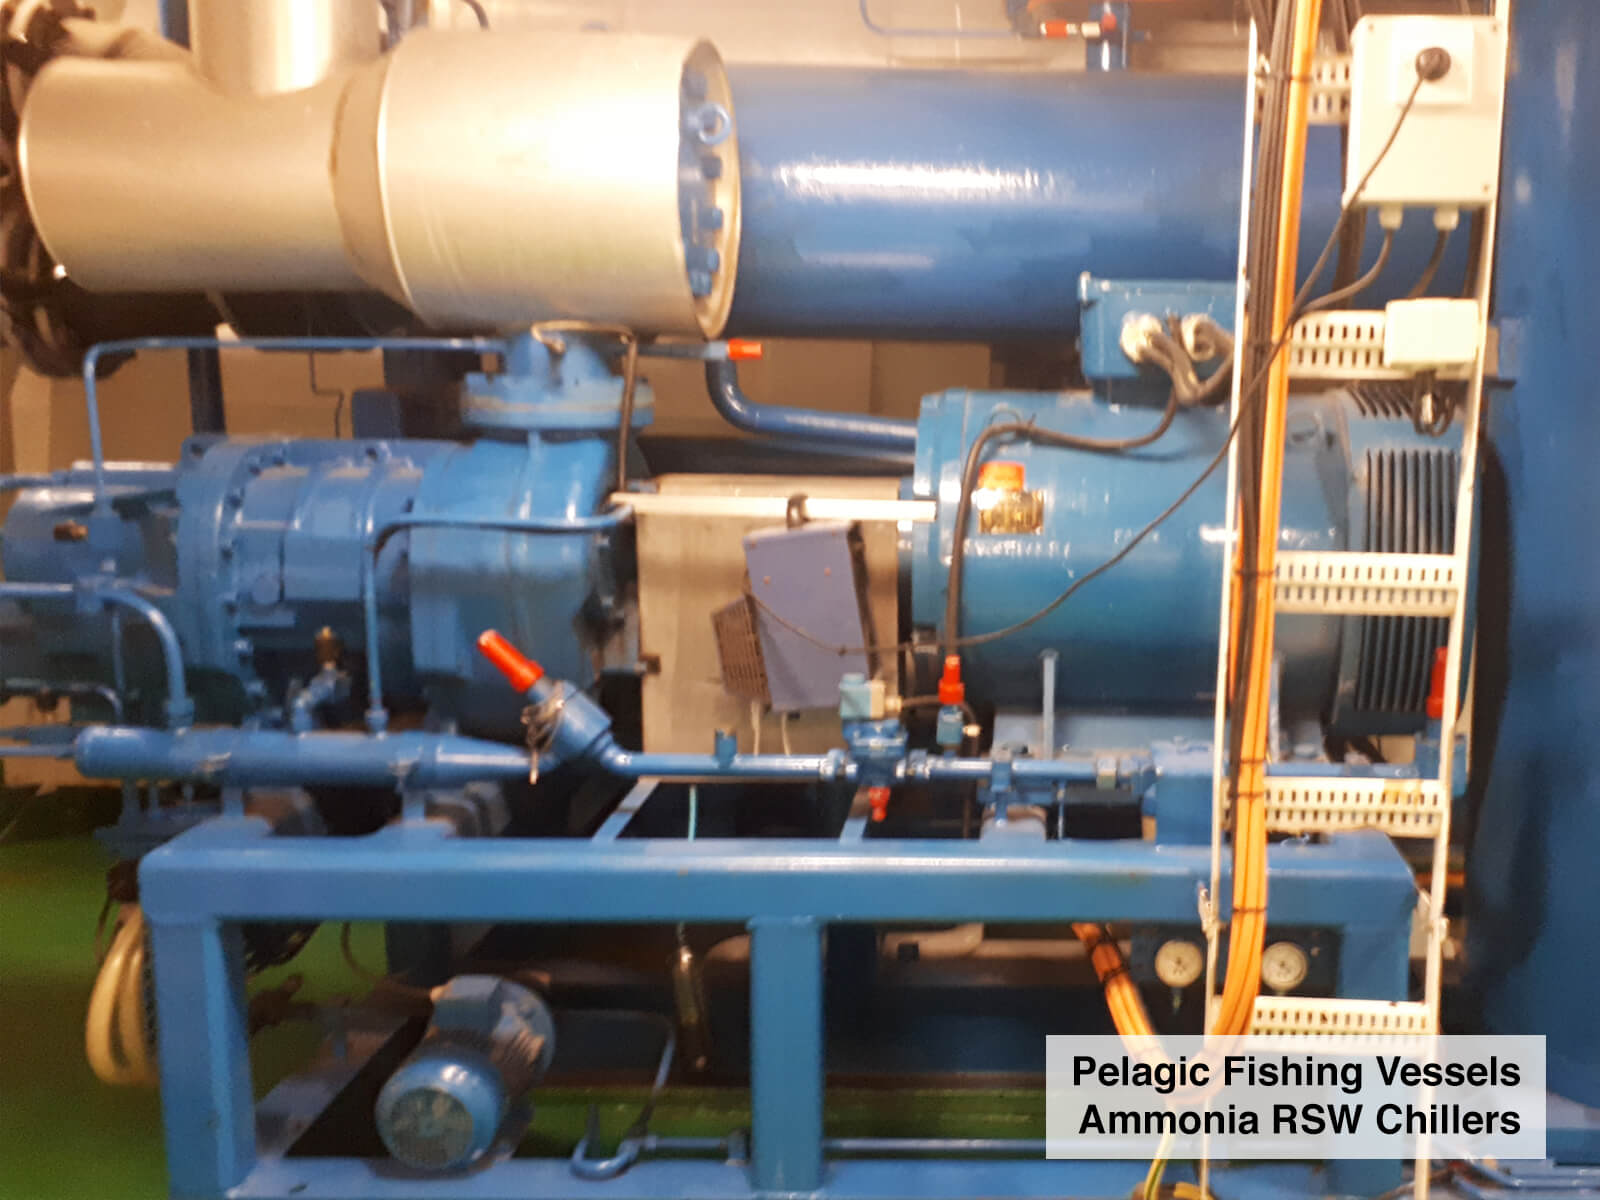 Pelagic-Fishing-Vessels-Ammonia-RSW-Chil